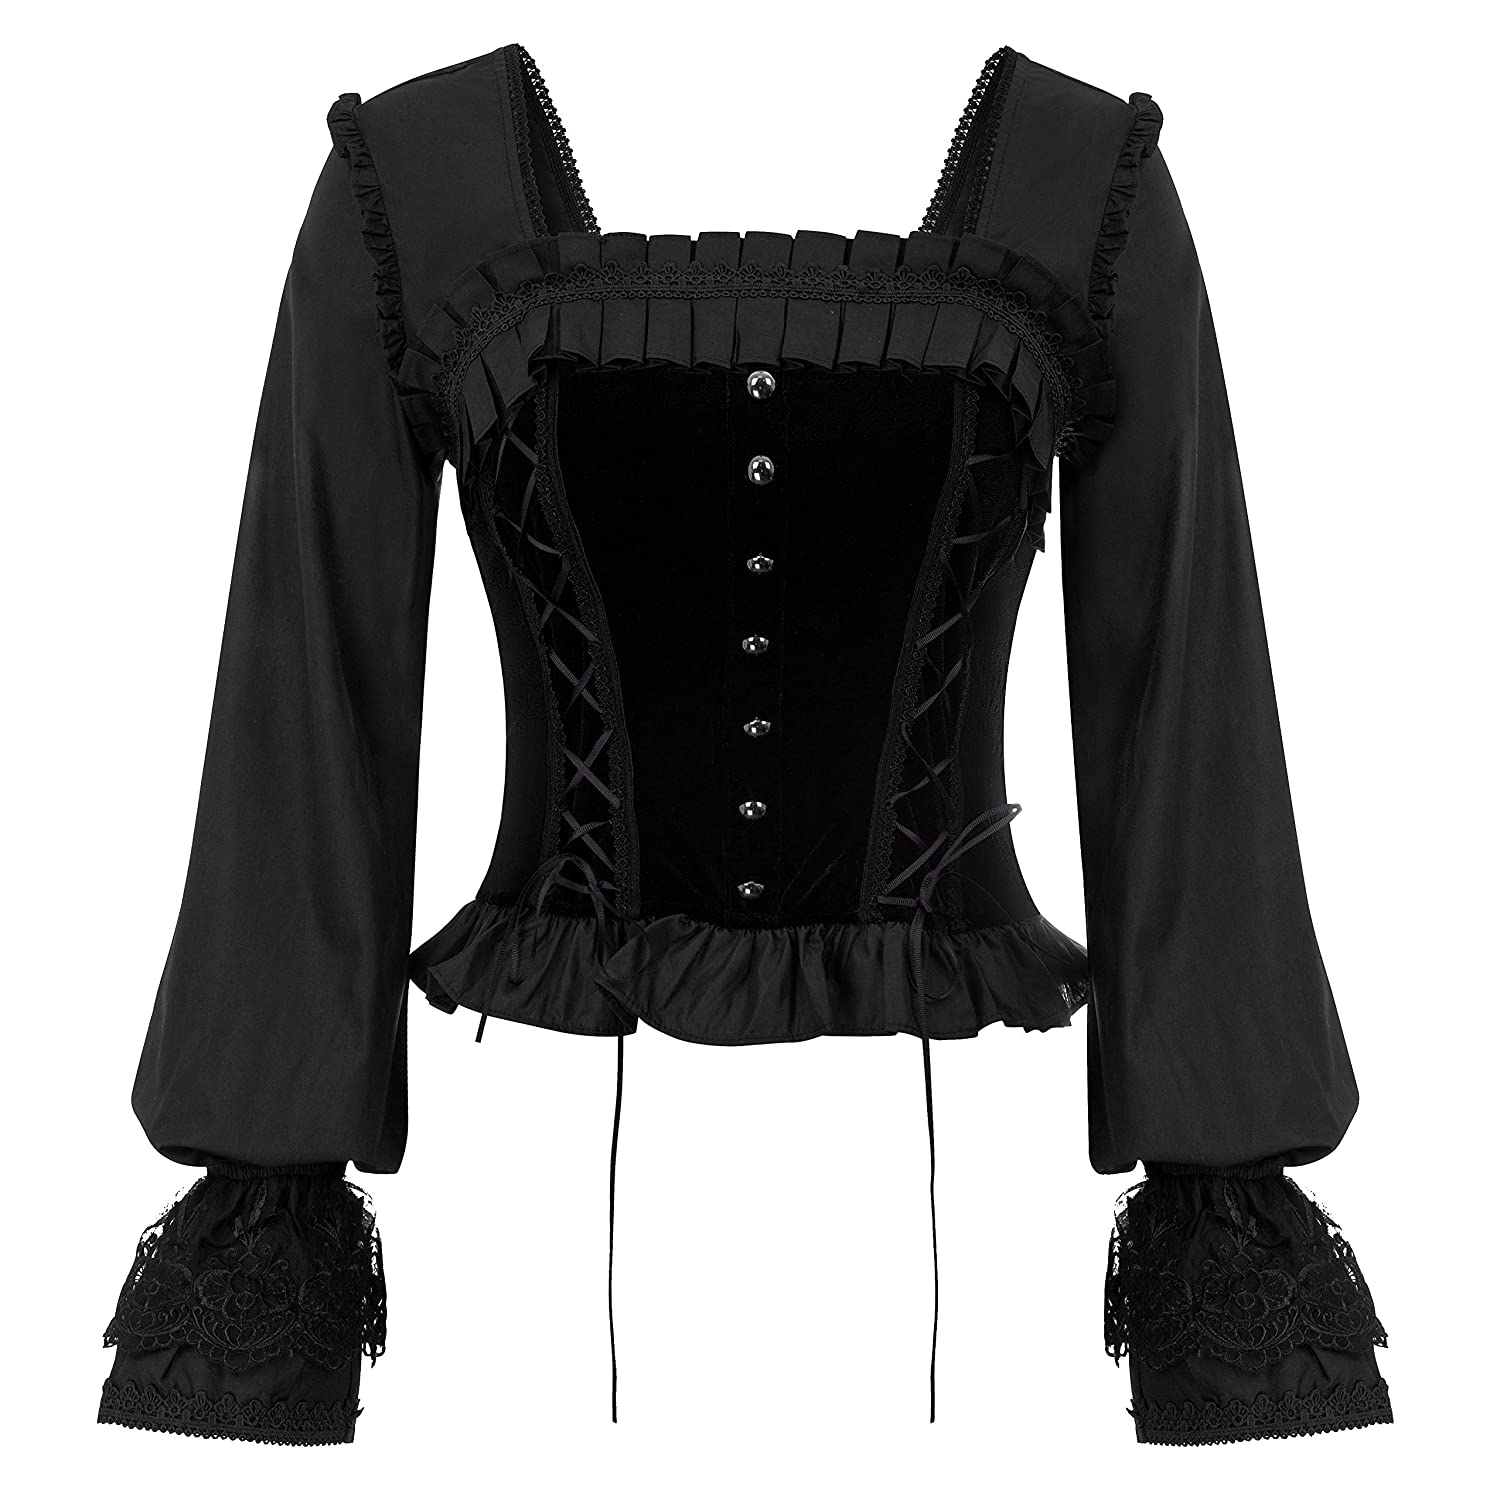 Women Gothic Victorian Long Sleeve Lace-up Tops Corset Overbust Bustier